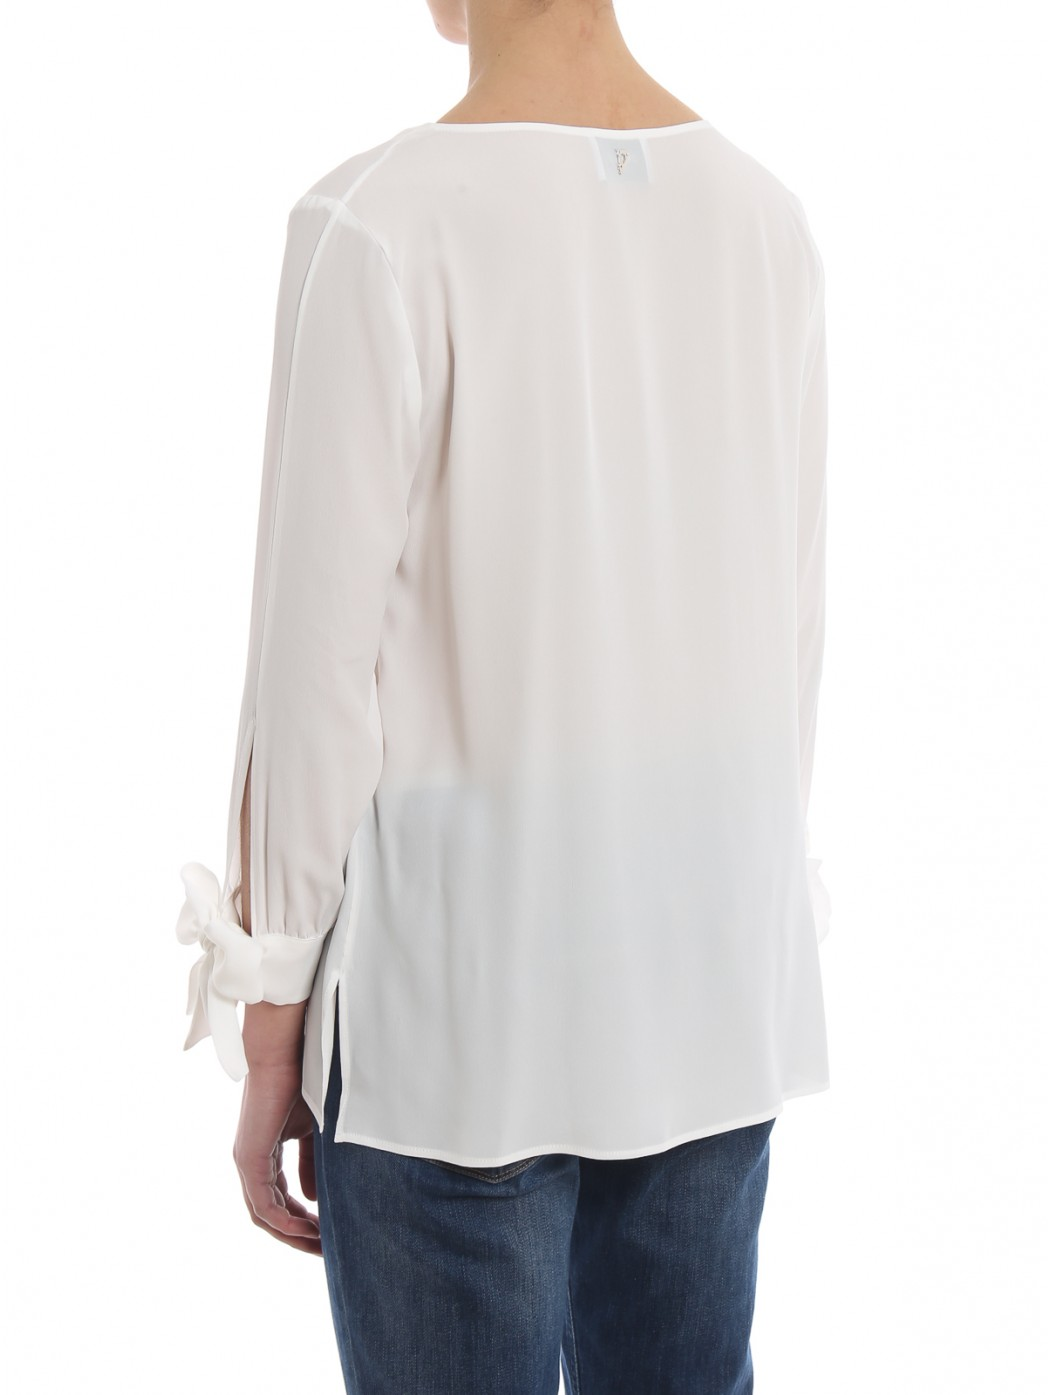 DONDUP DC044 000 CAMICIE